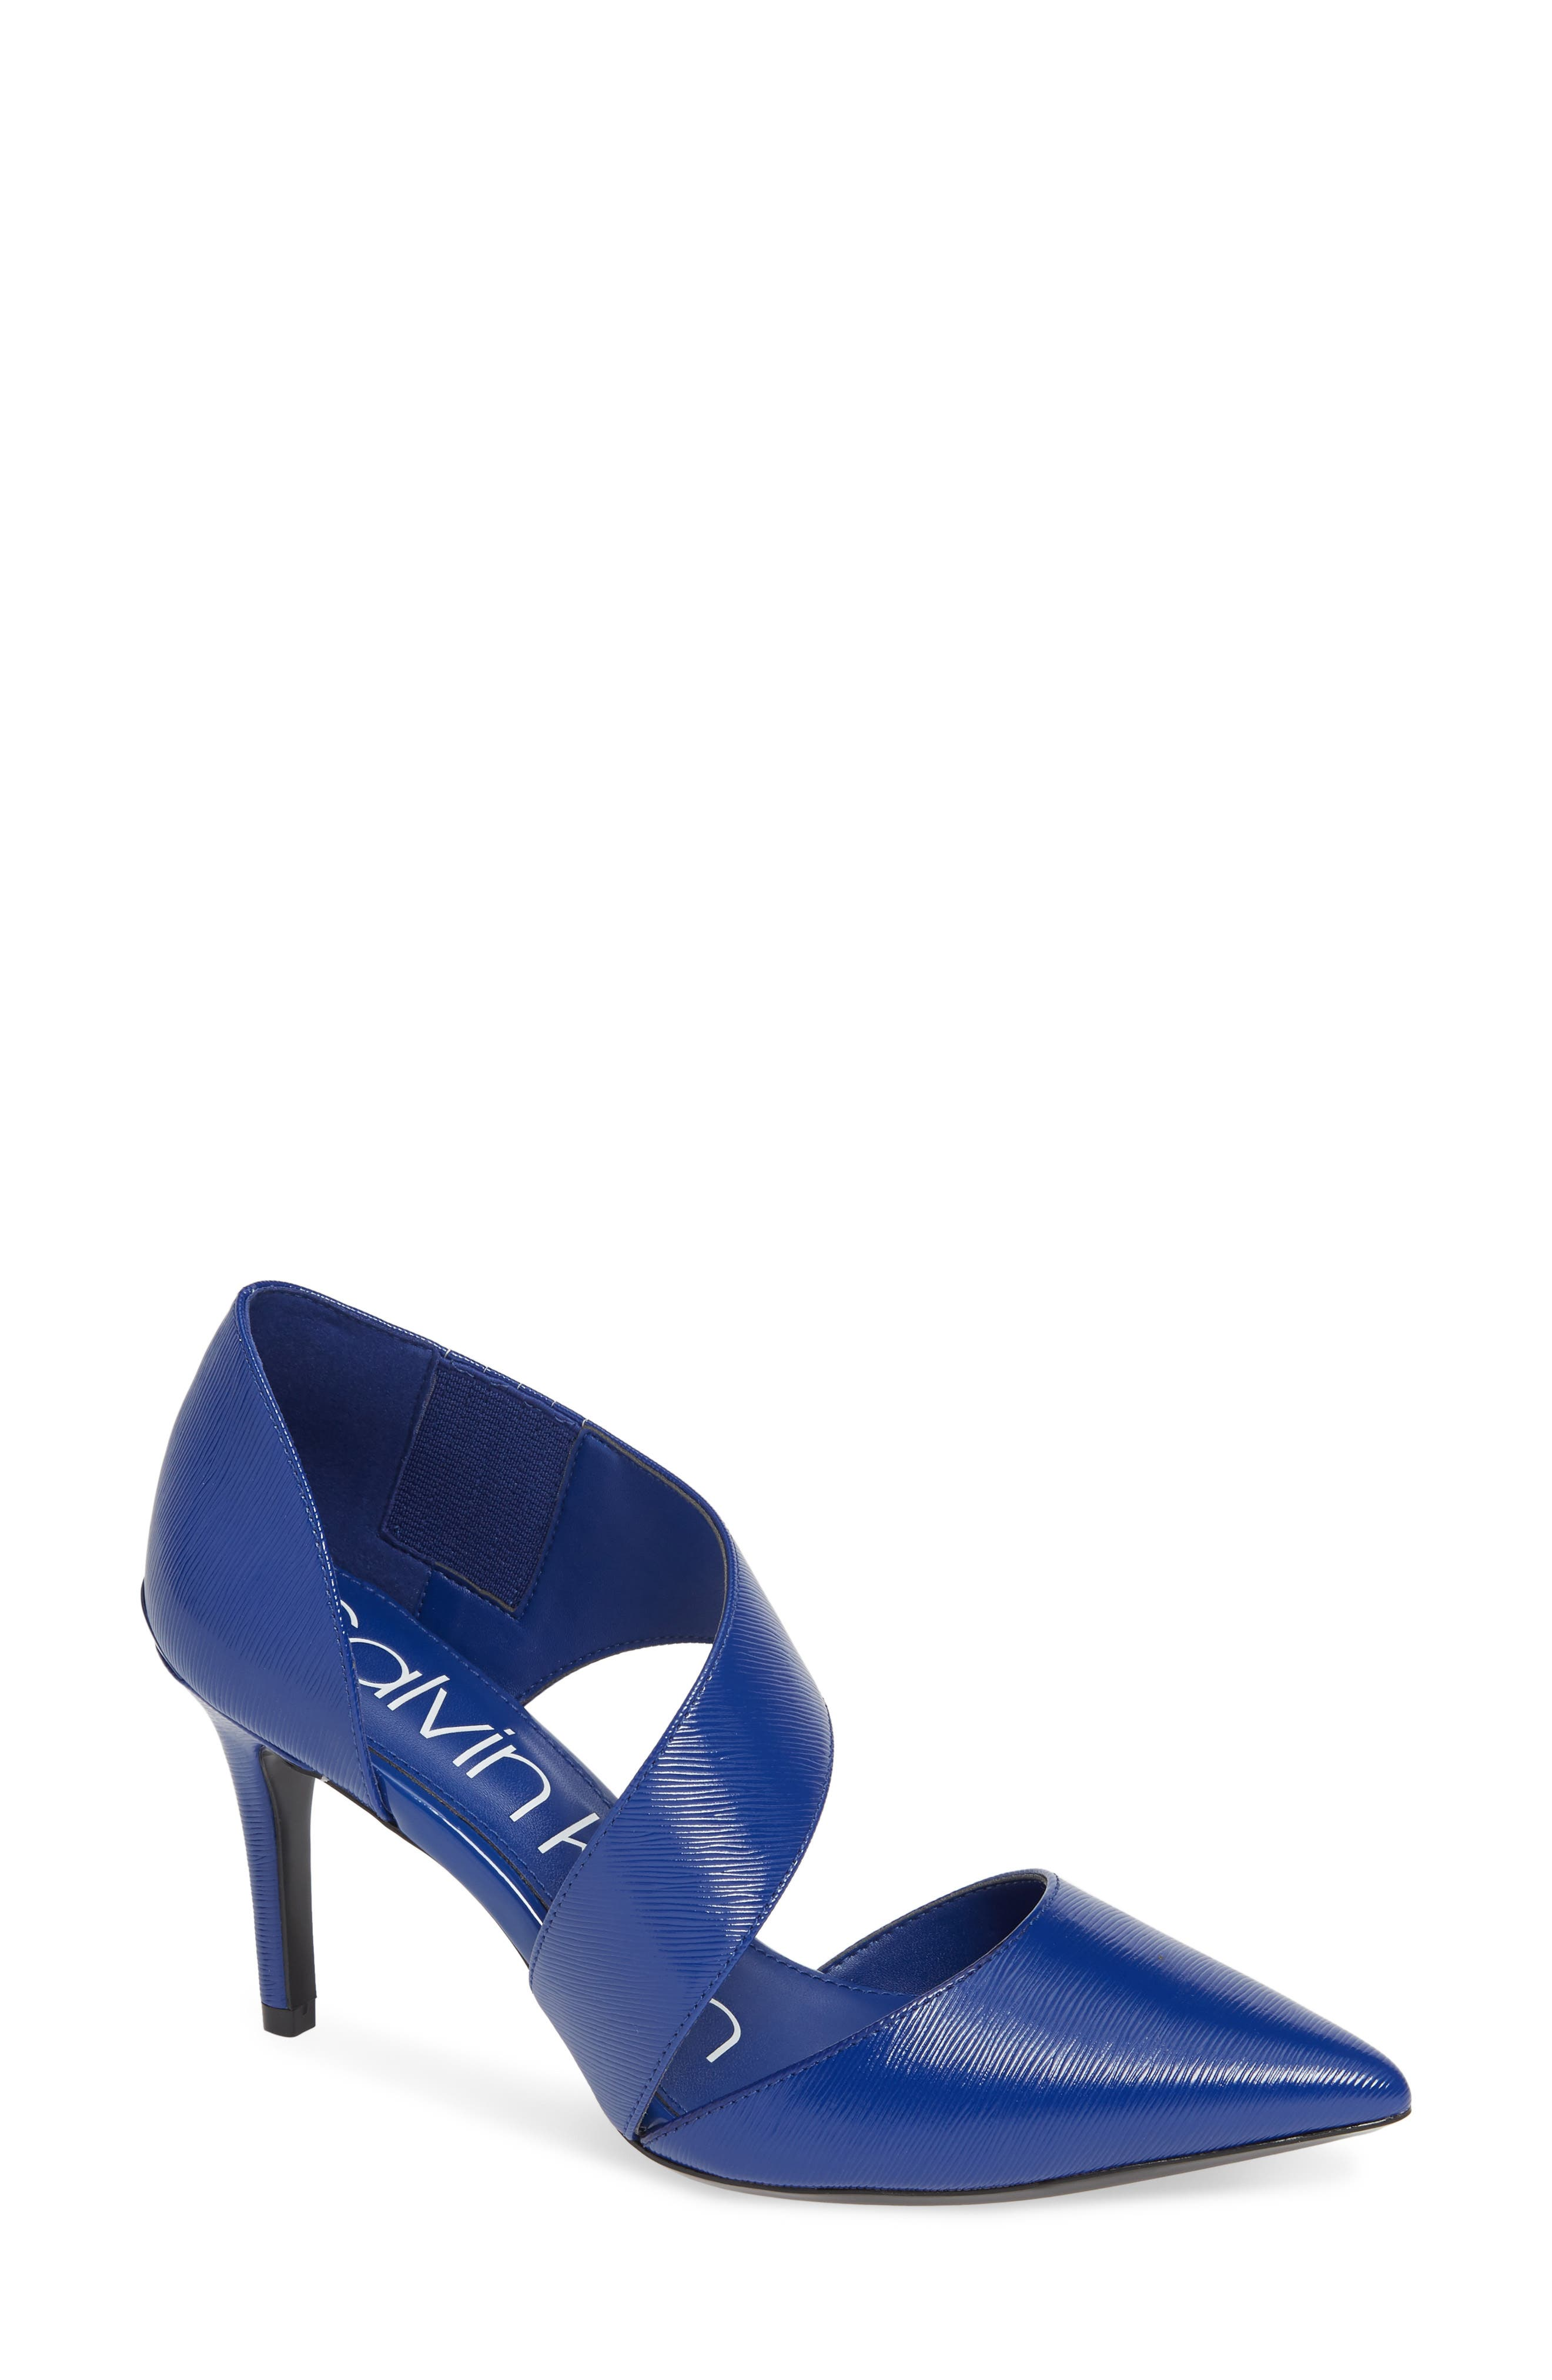 CALVIN KLEIN 'Gella' Pointy Toe Pump, Main, color, ROYAL BLUE PATENT LEATHER